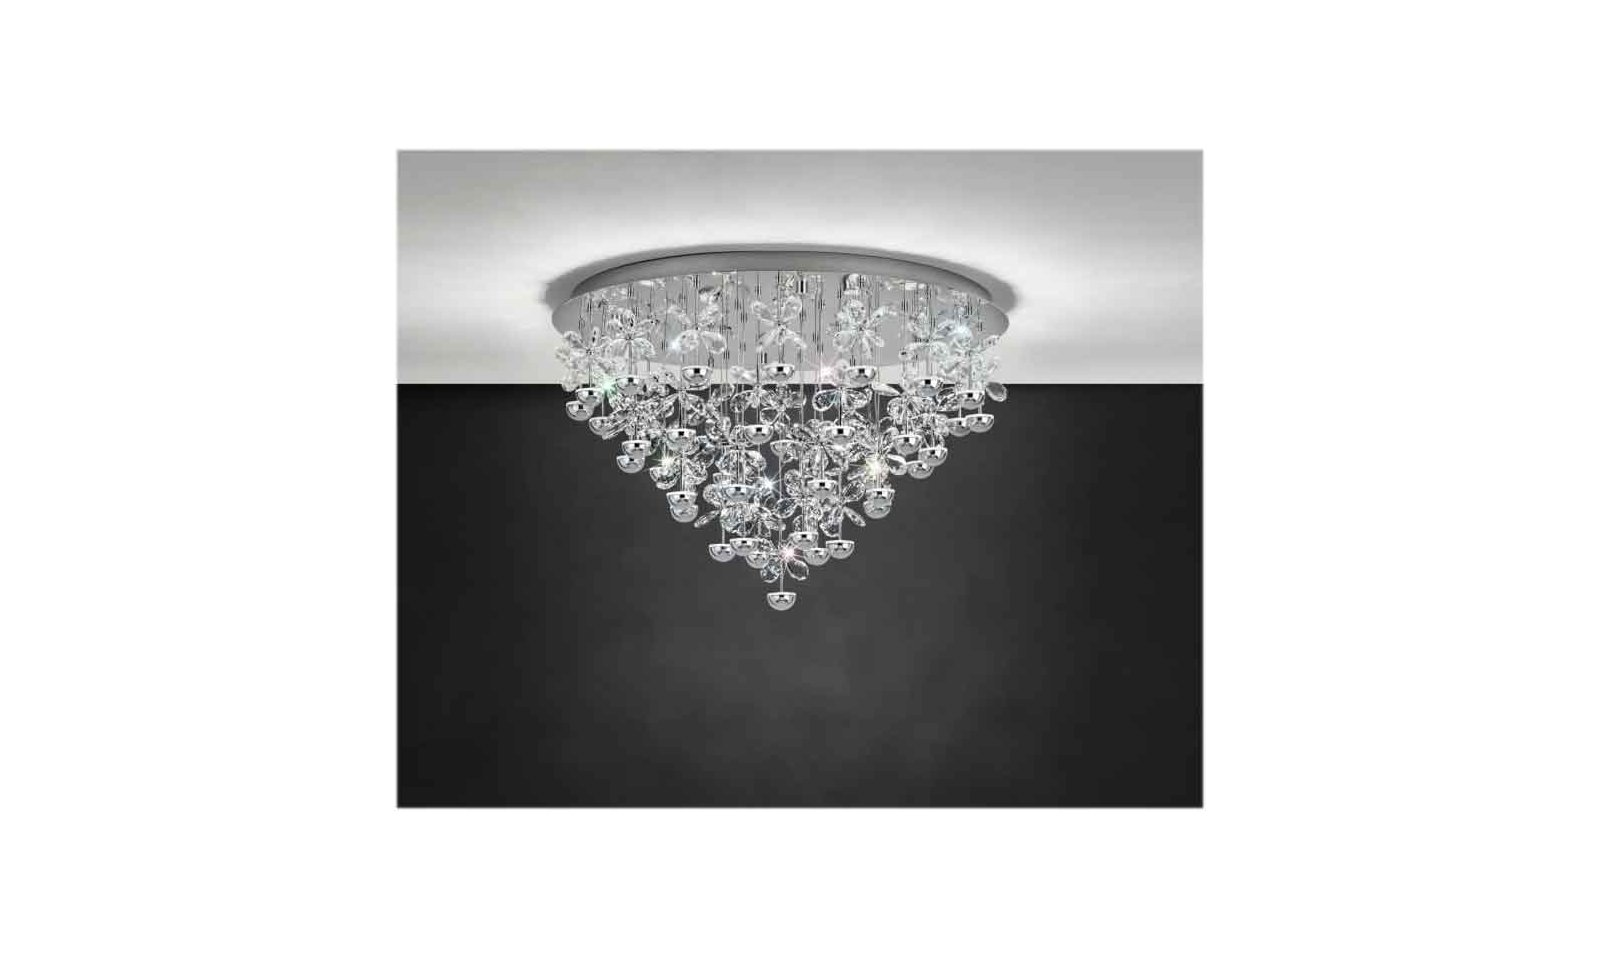 Eglo Plafoniere Led : Eglo pianopoli led ceiling lamp in inox steel and crystal diffuser